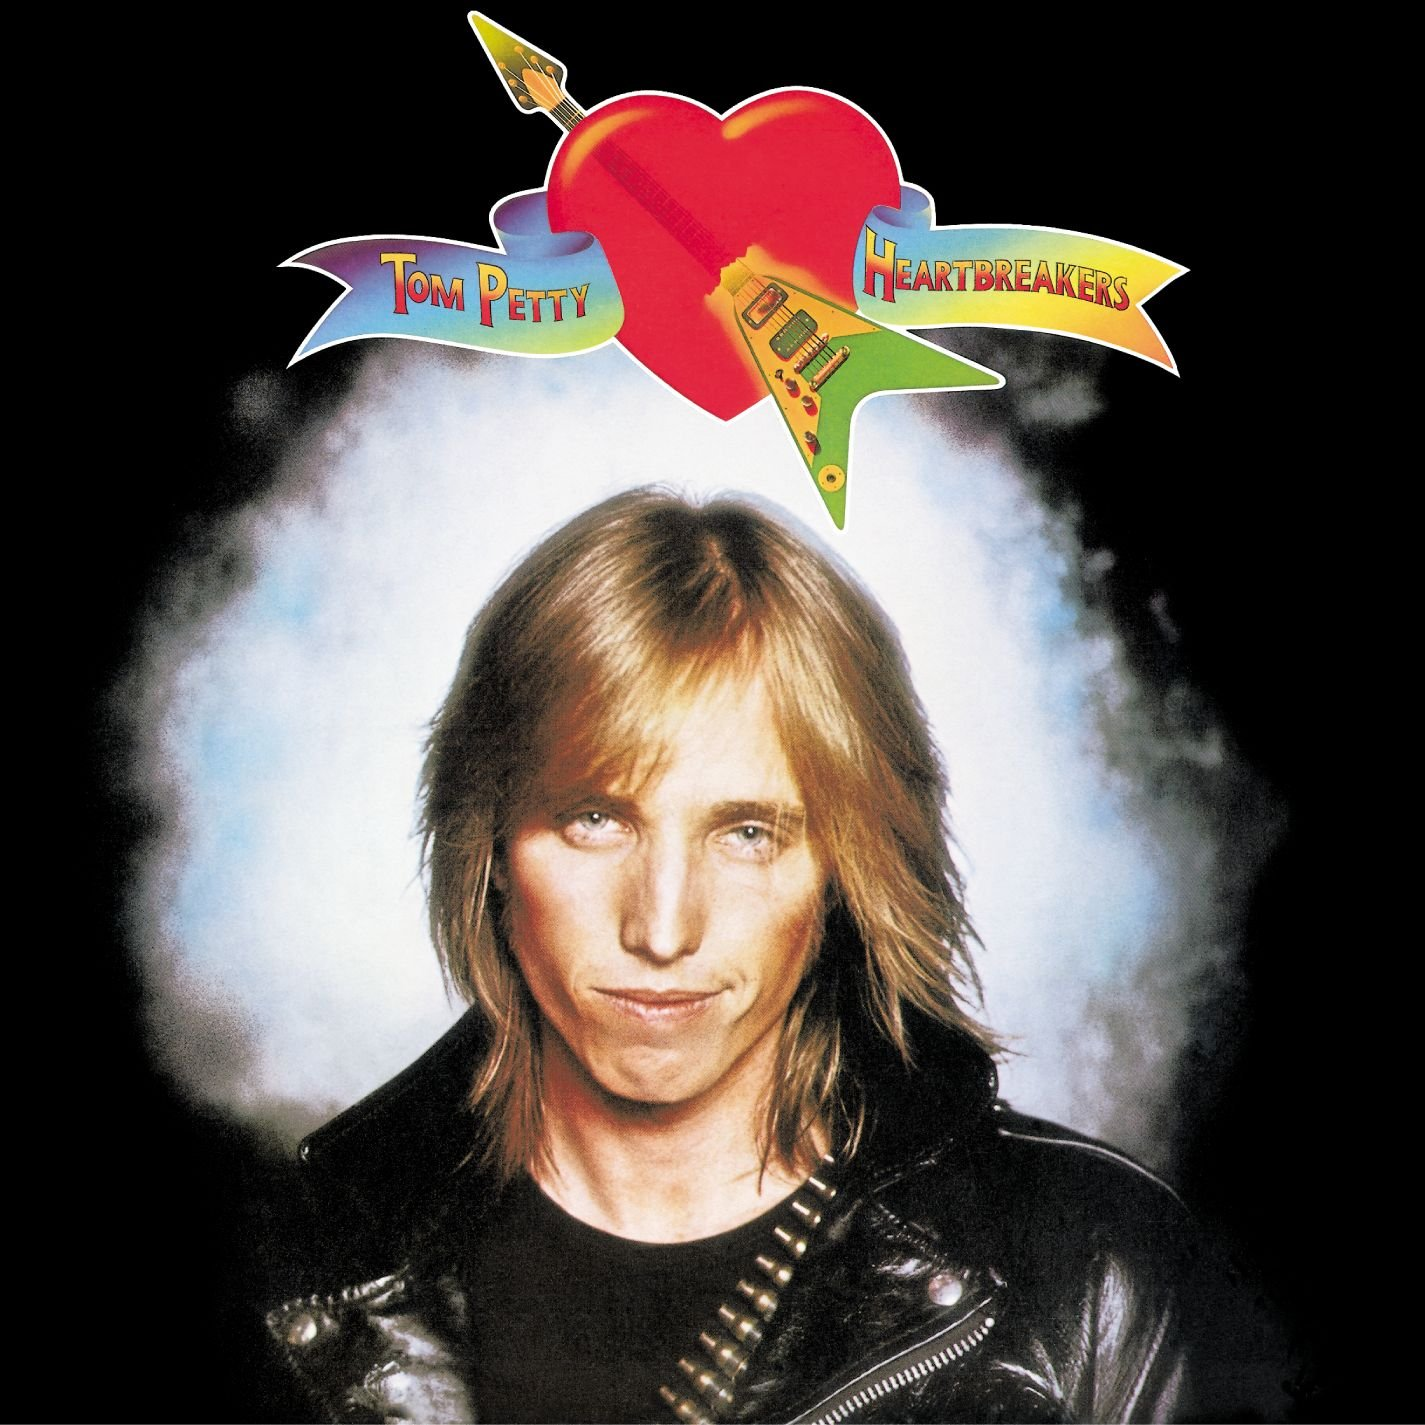 Tom Petty & The Heartbreakers by Warner Bros.